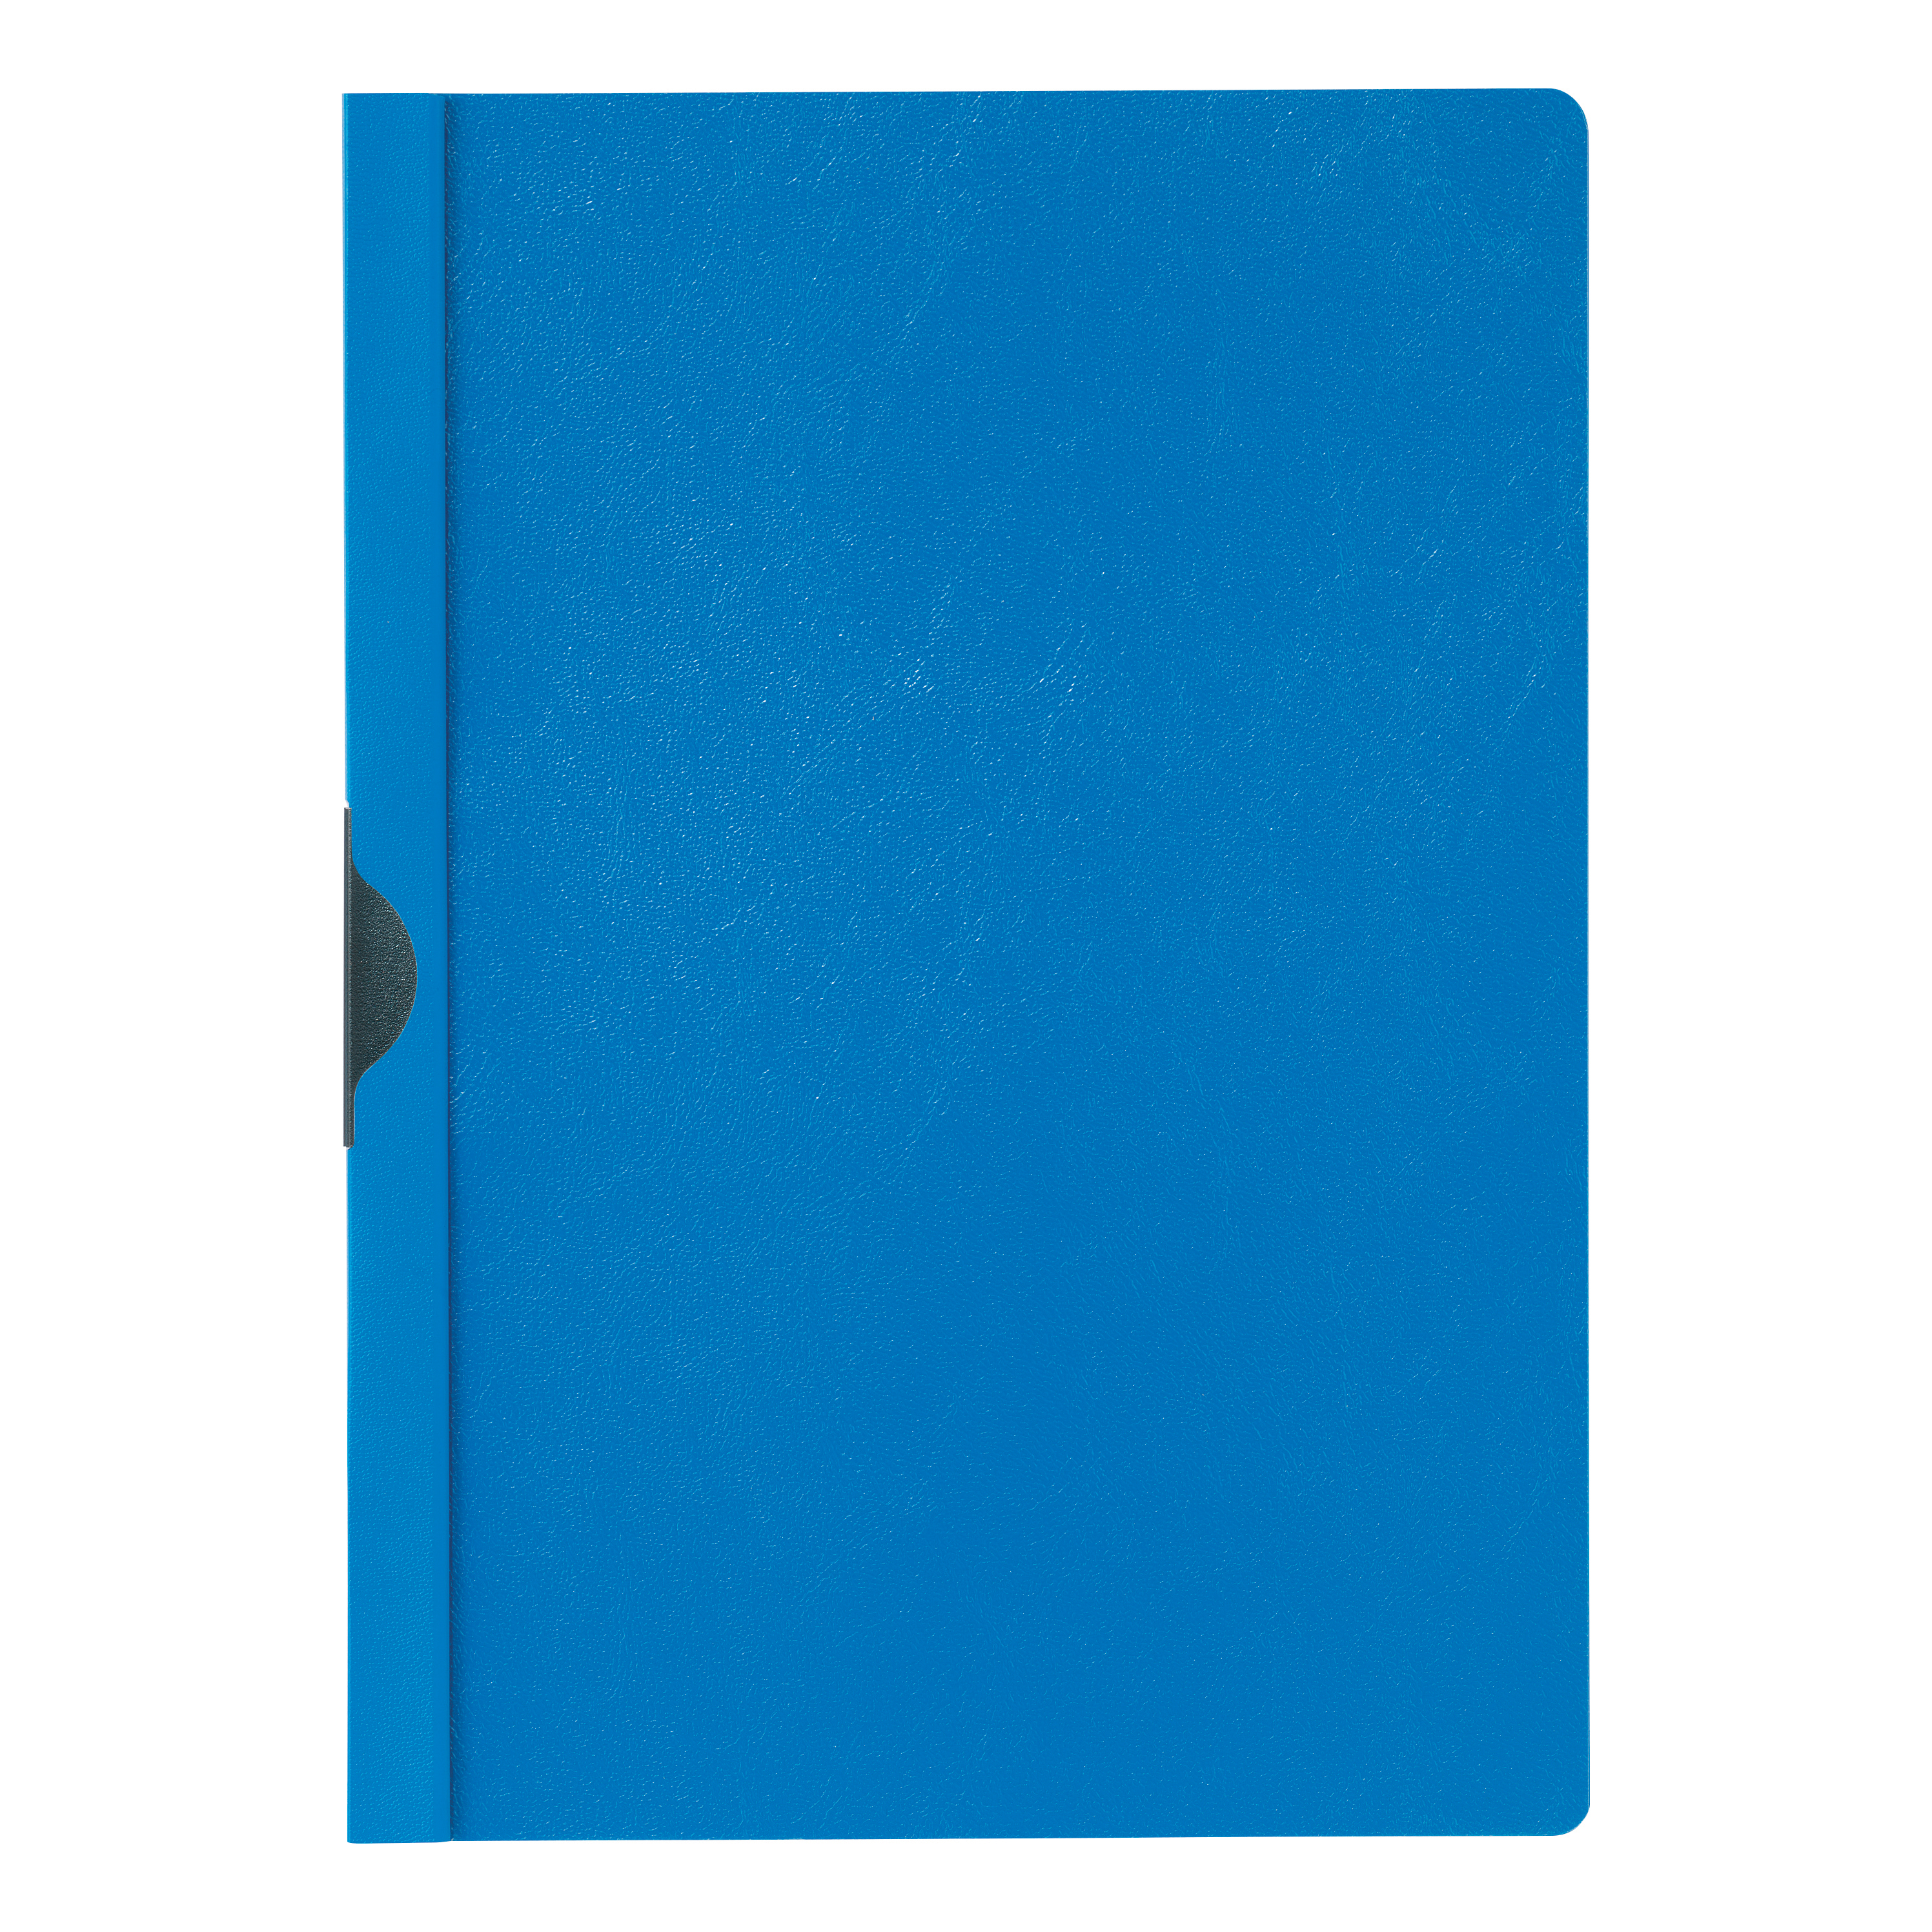 5 Star Office Clip Folder 3mm Spine for 30 Sheets A4 Blue Pack 25